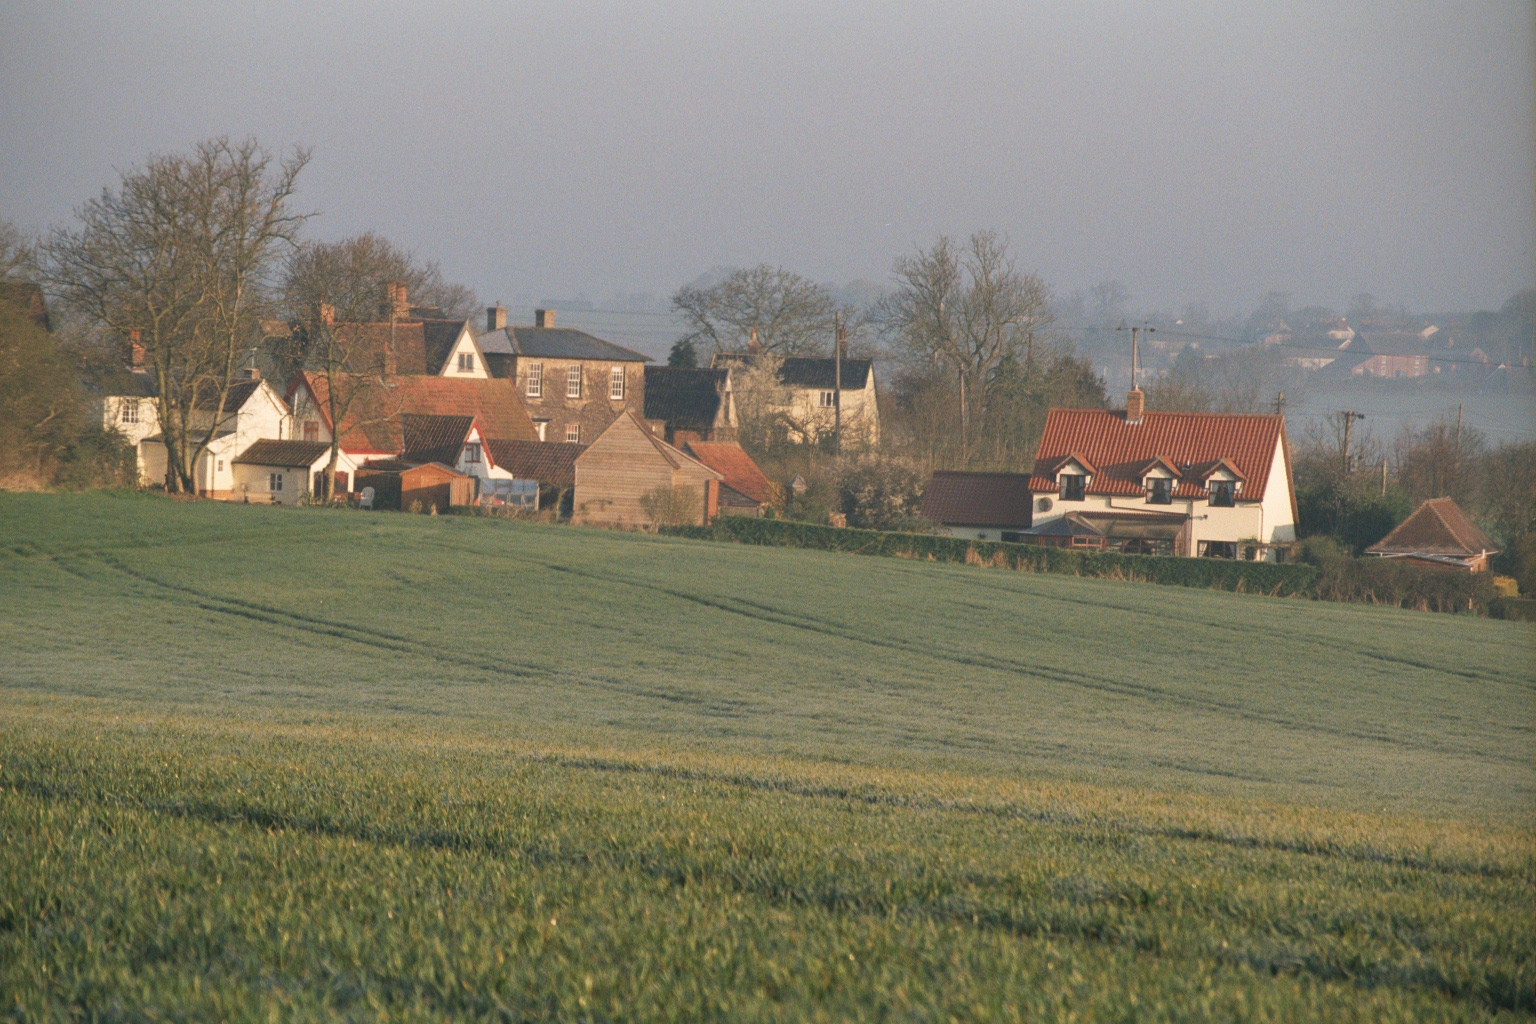 Wickhambrook Village scene